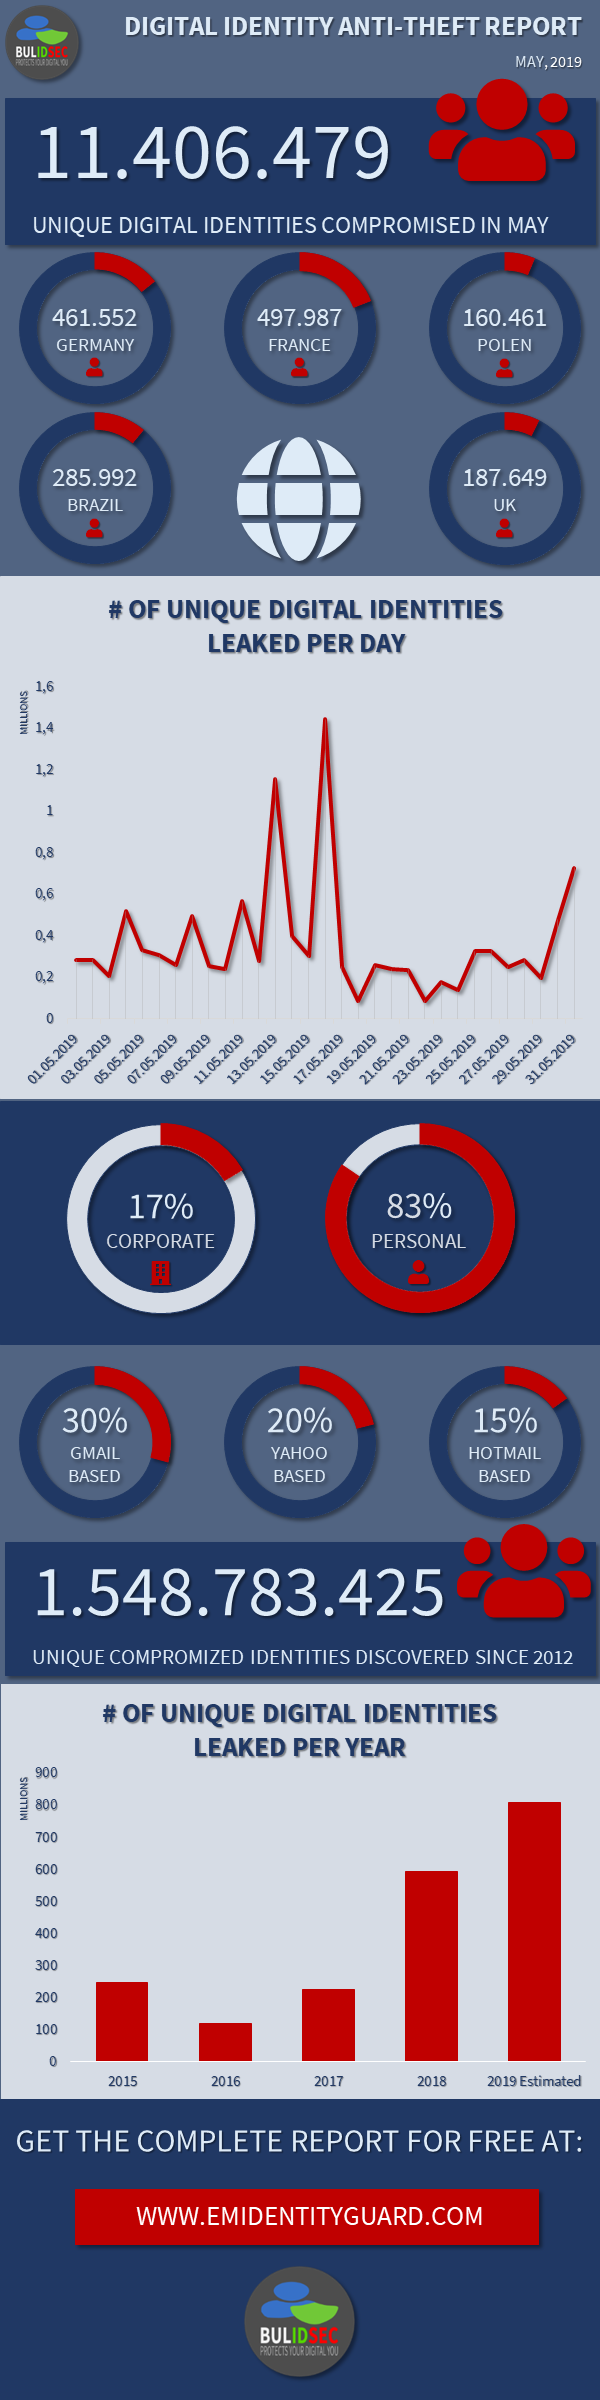 BULIDSEC Digital Identity AntiTheft Report Statistics May 2019